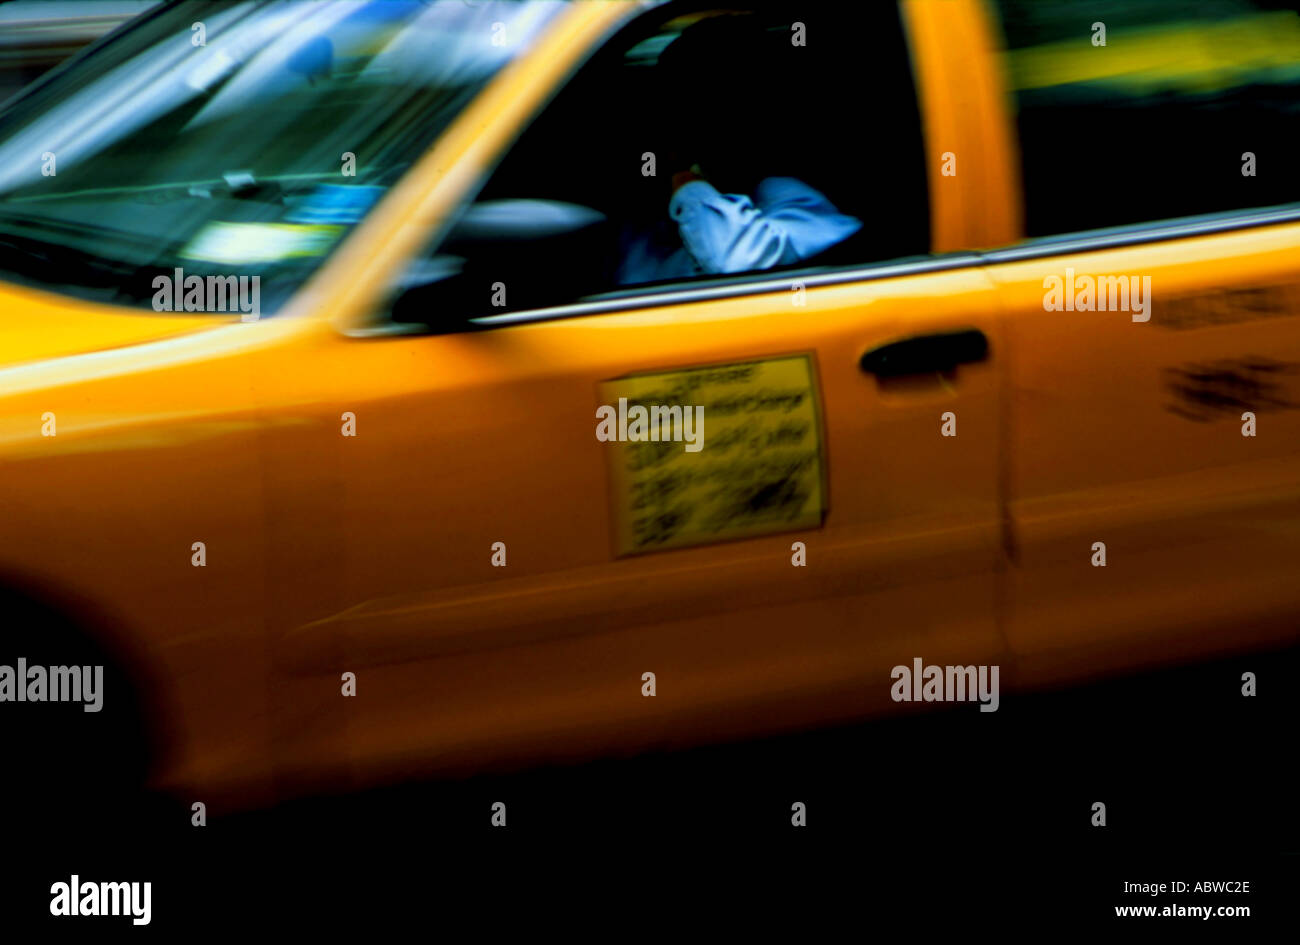 A New York taxicab in motion. - Stock Image